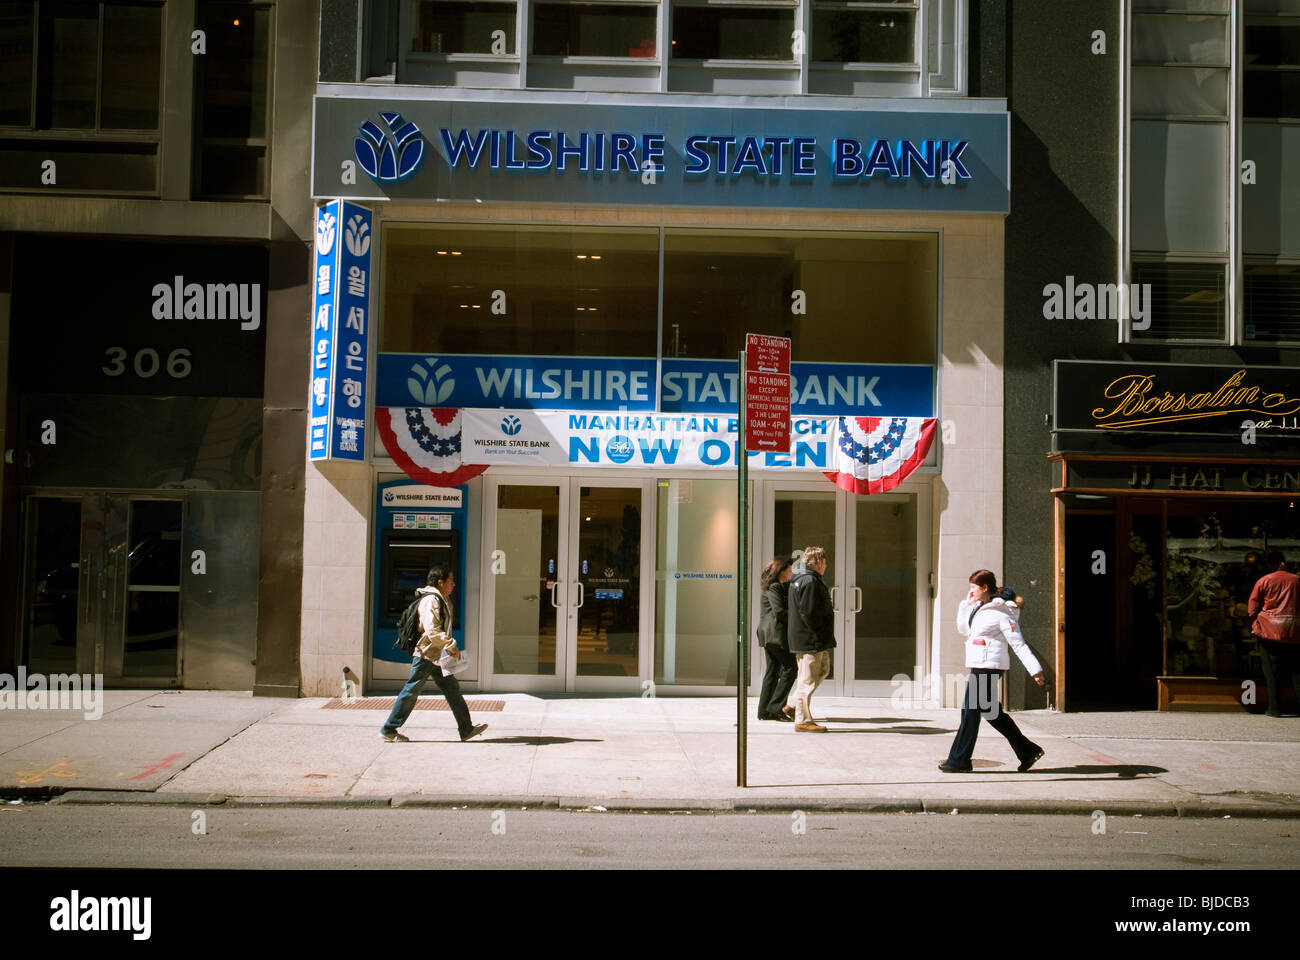 A branch of the Wilshire State Bank in the Koreatown neighborhood of New York - Stock Image